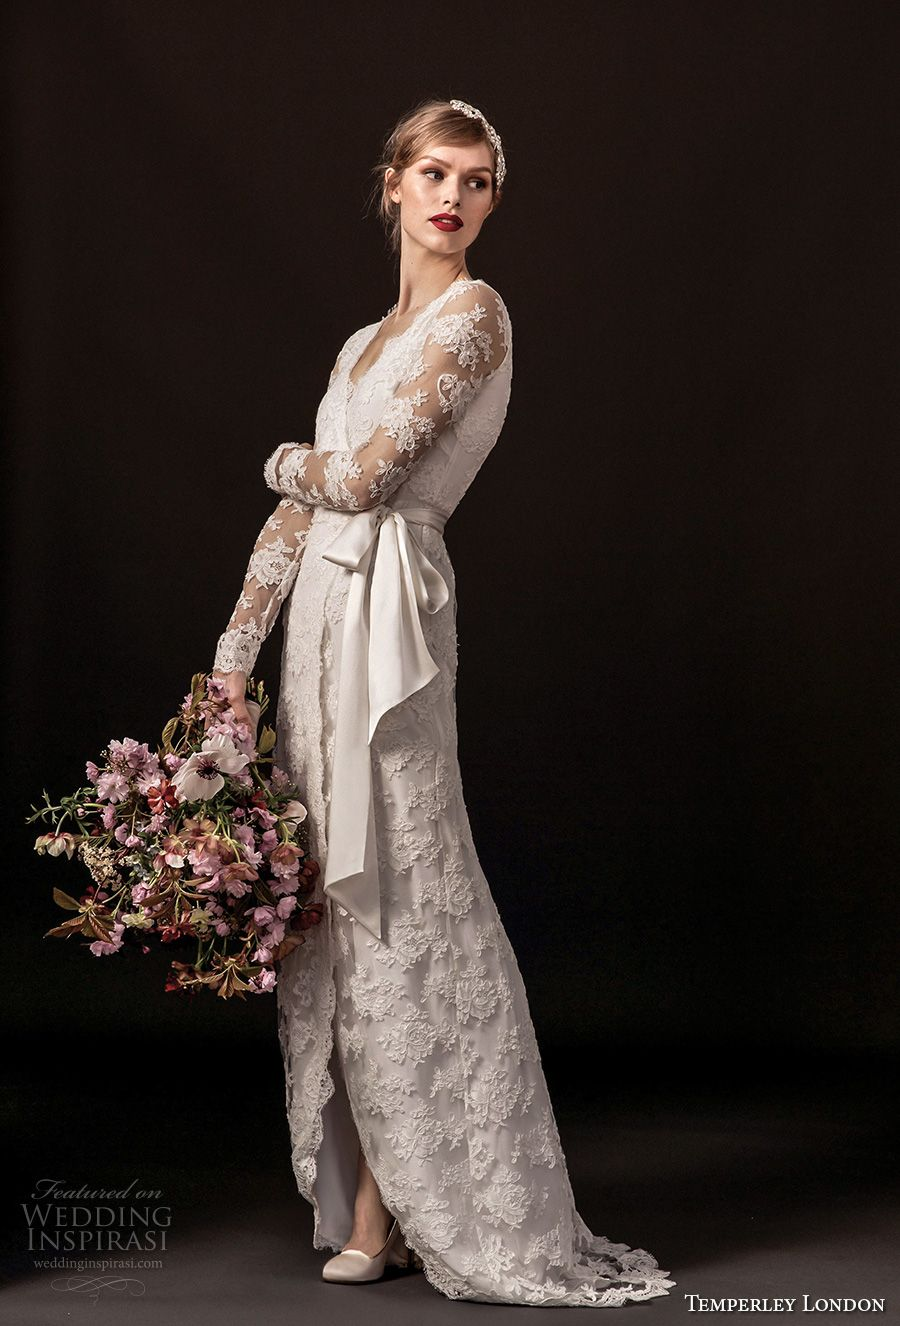 Temperley london spring wedding dresses u ucdahliaud bridal